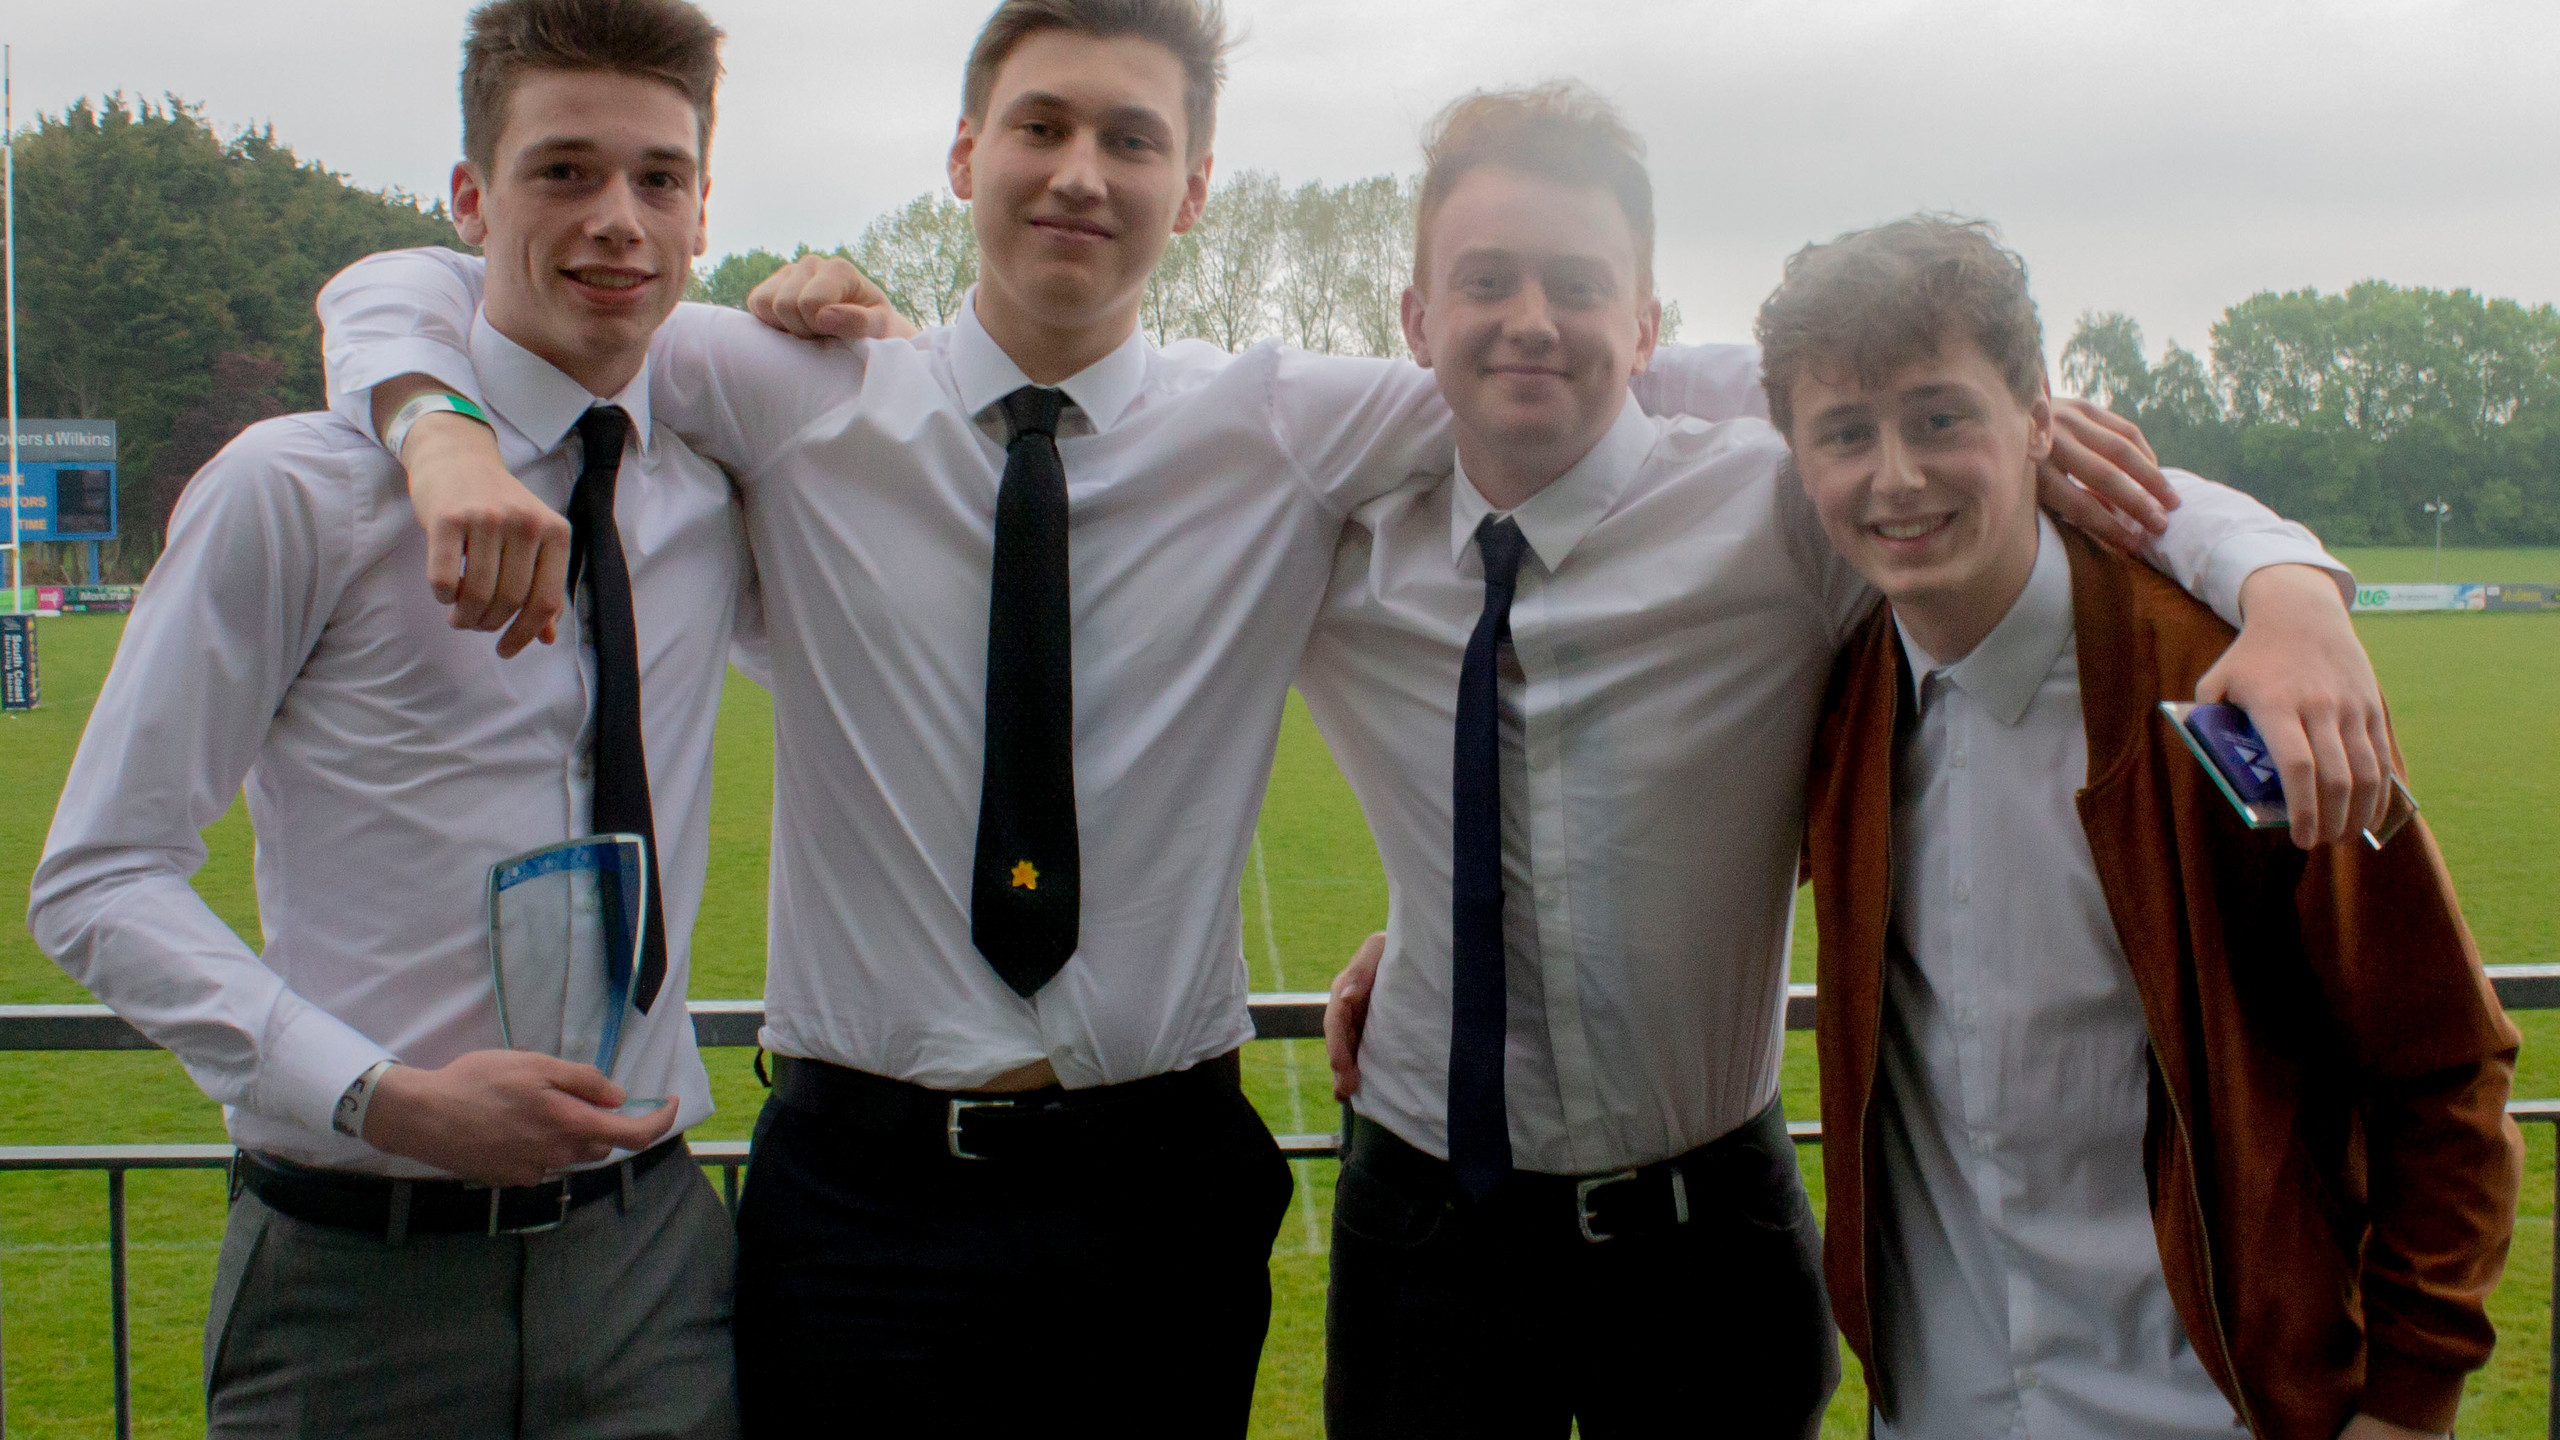 Sports Awards - Basketball Team